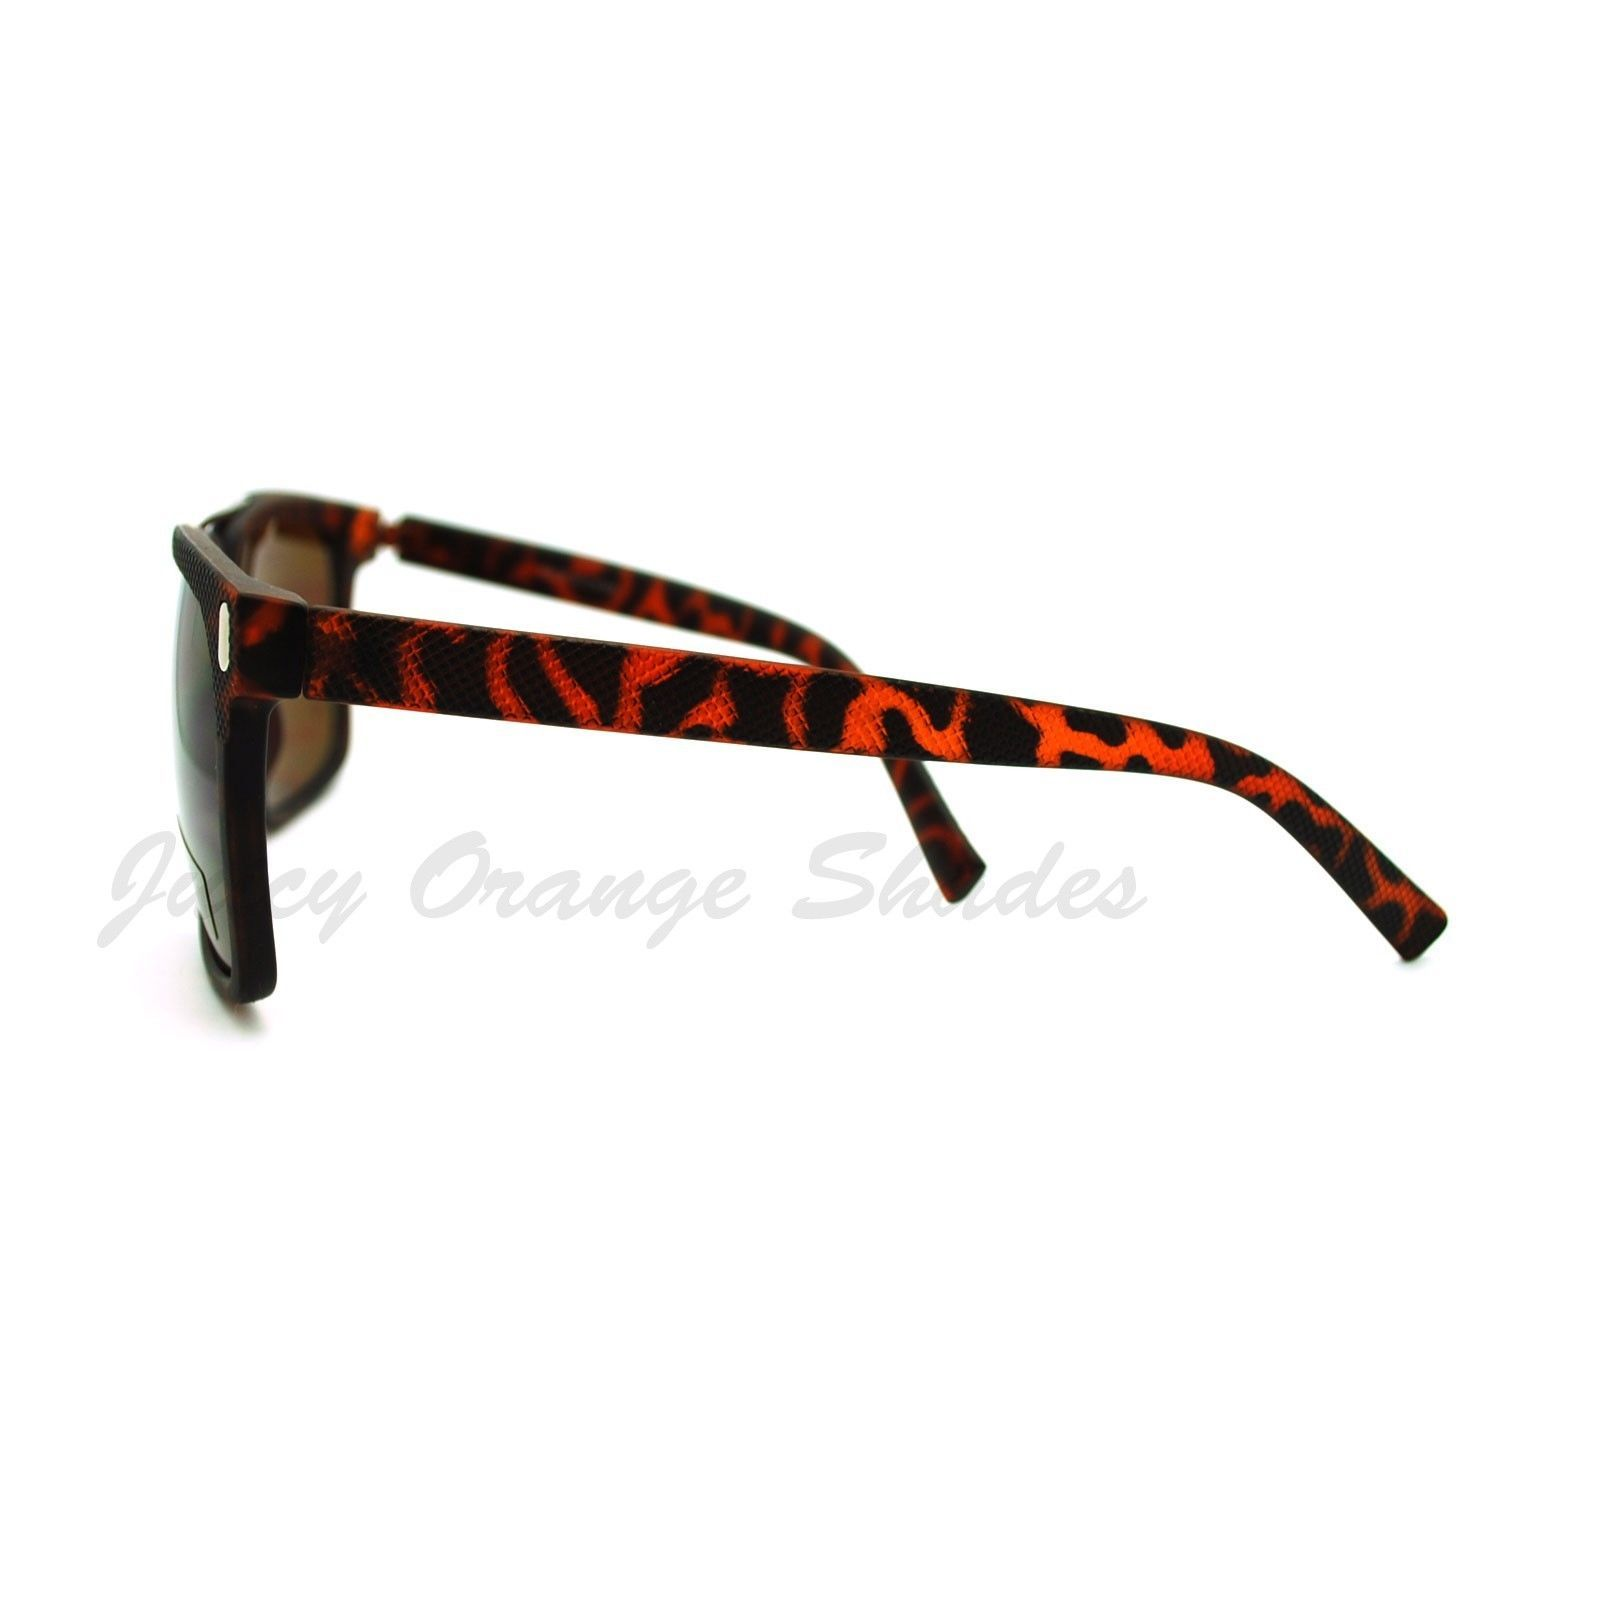 Unisex Retro Fashion Sunglasses Stylish Square Flat Top Shades